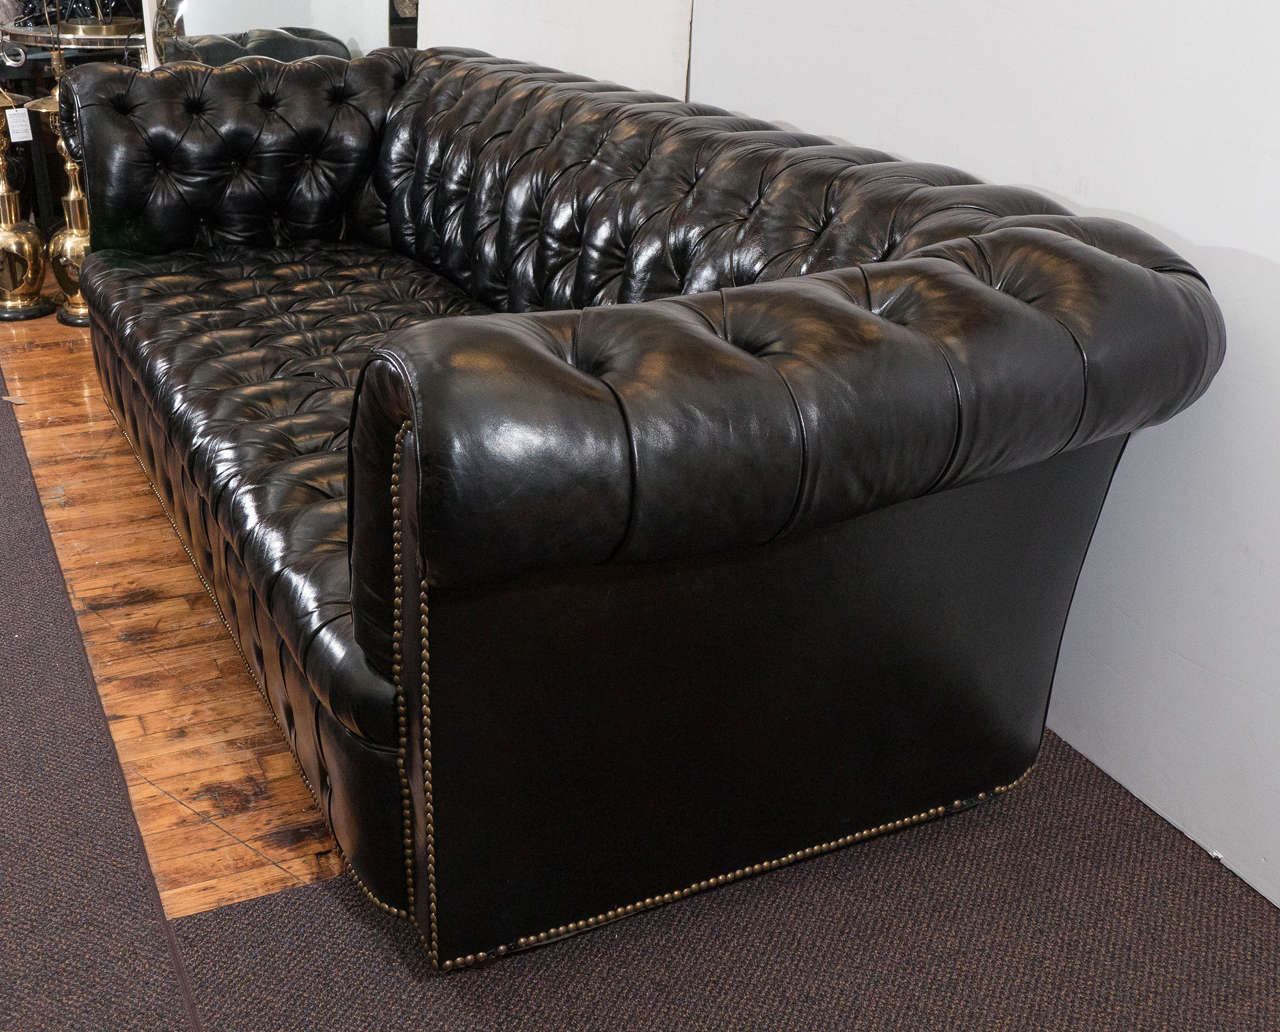 Midcentury Chesterfield Sofa in Tufted Black Leather at 1stdibs